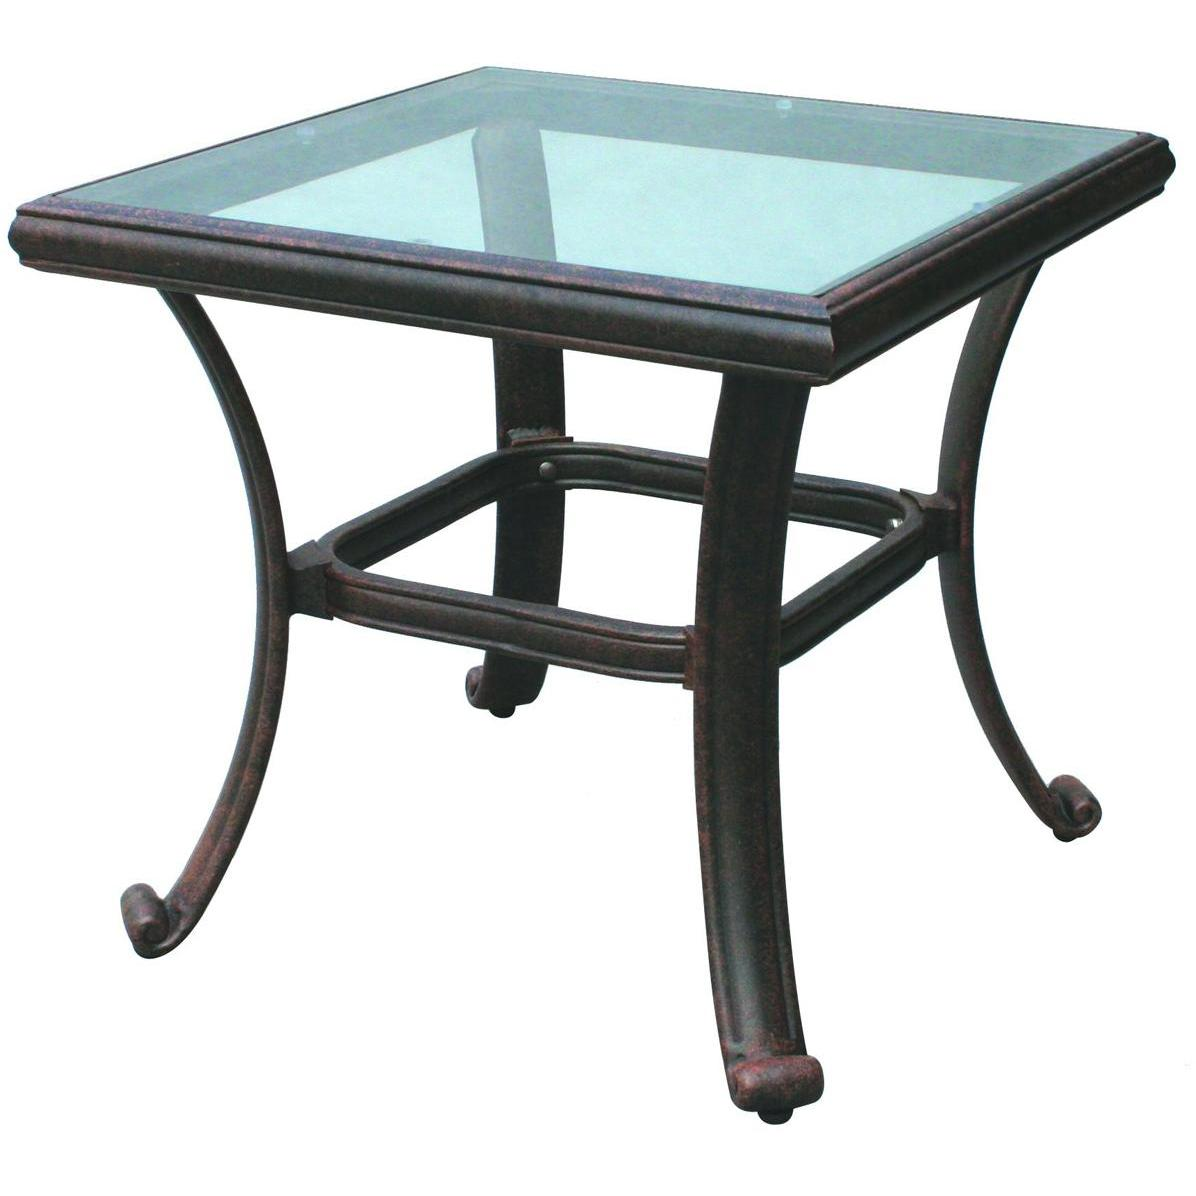 patio metal and glass end tables outdoor coffee table stone low side accent top west elm stools space saving beds for small rooms red plaid runner height rules jcpenney lamps